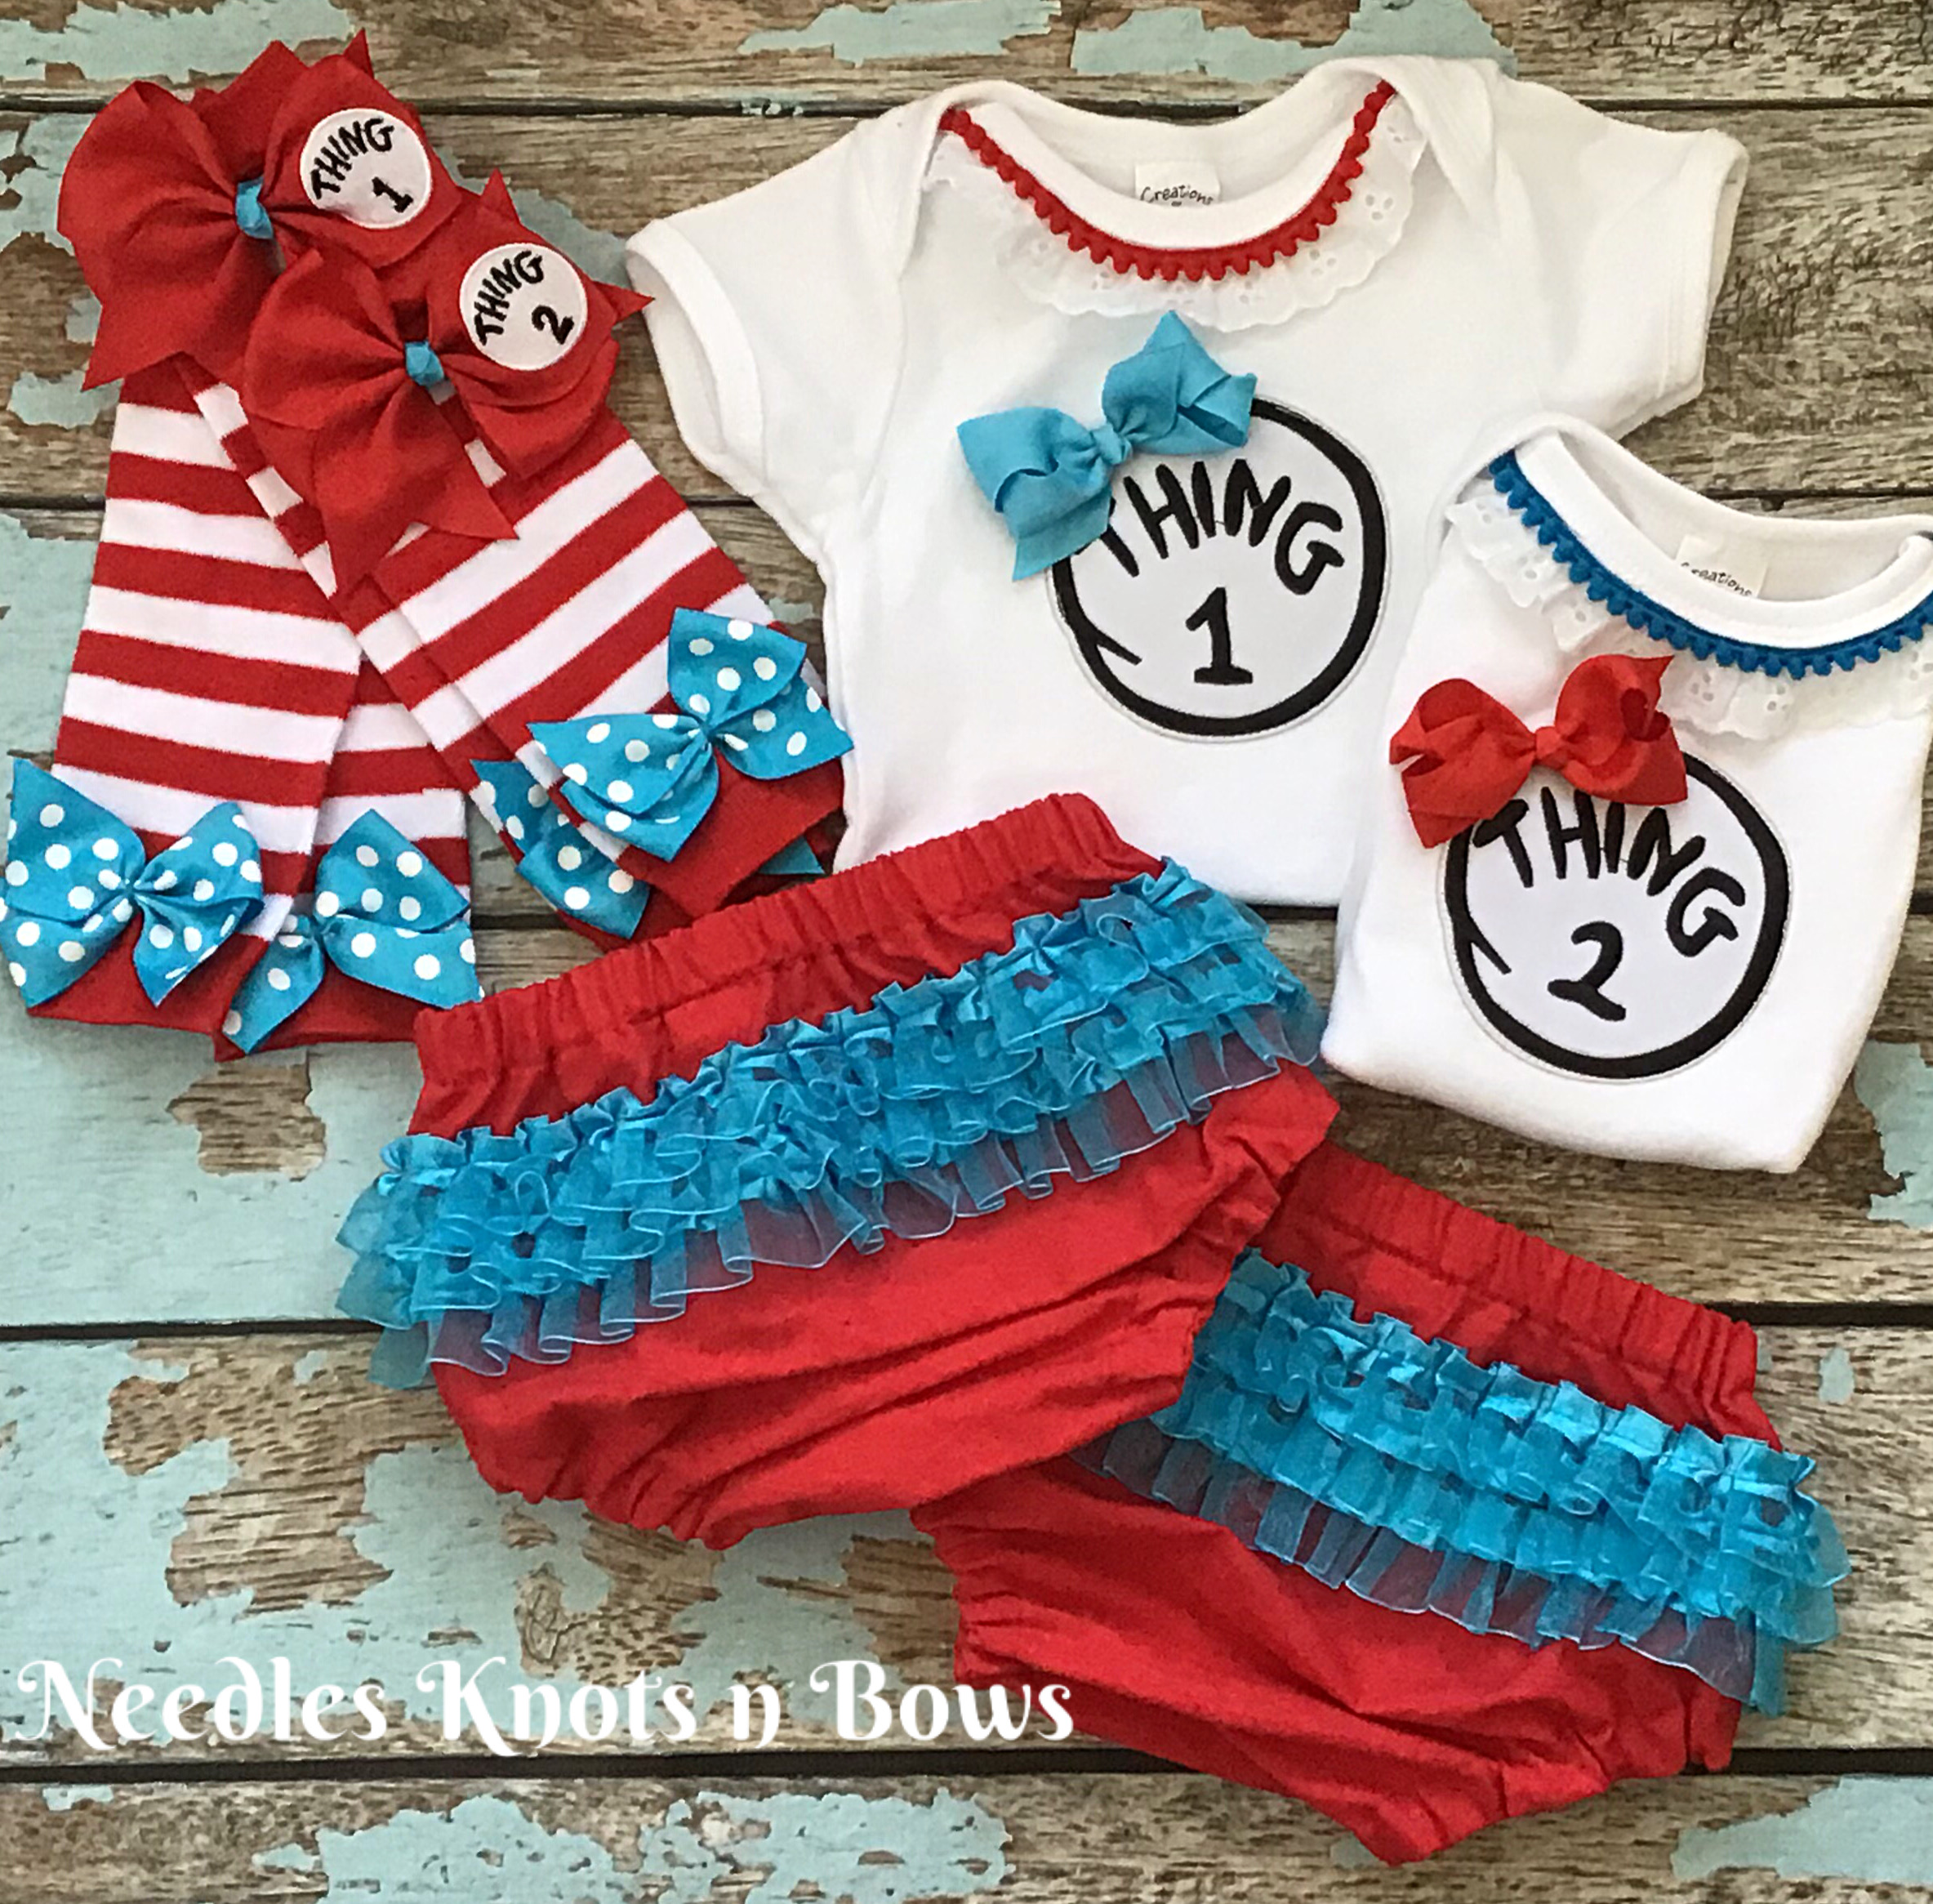 Miraculous Twin Girls Cake Smash Outfits Girls Thing 1 Thing 2 Outfits Funny Birthday Cards Online Necthendildamsfinfo